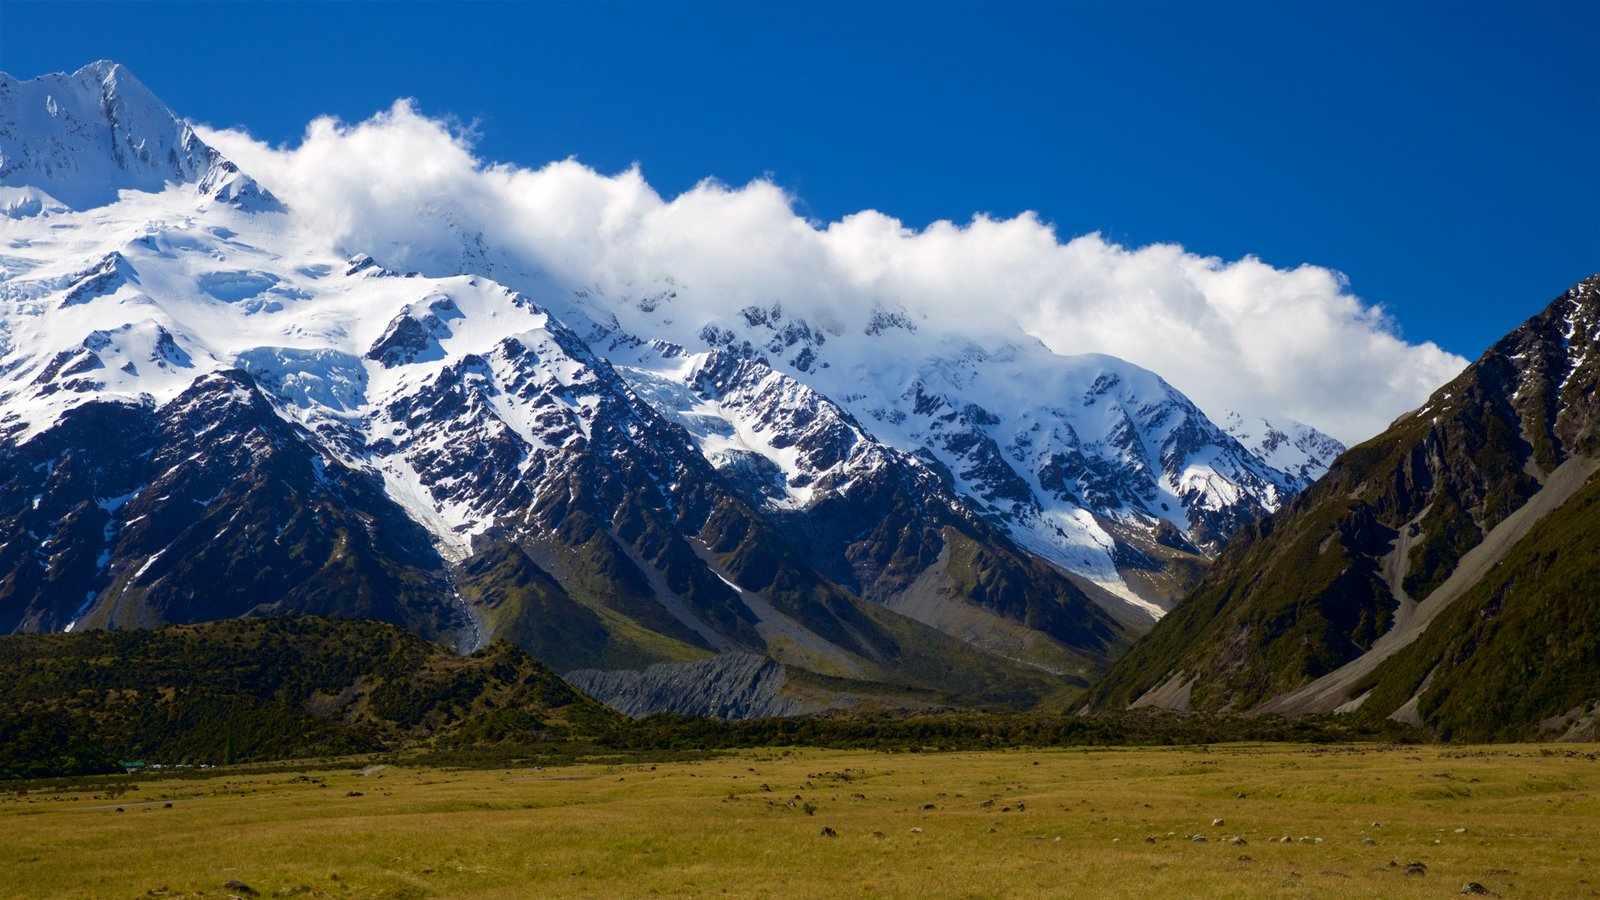 Mount Cook National Park which includes tranquil scenes, mountains and landscape views